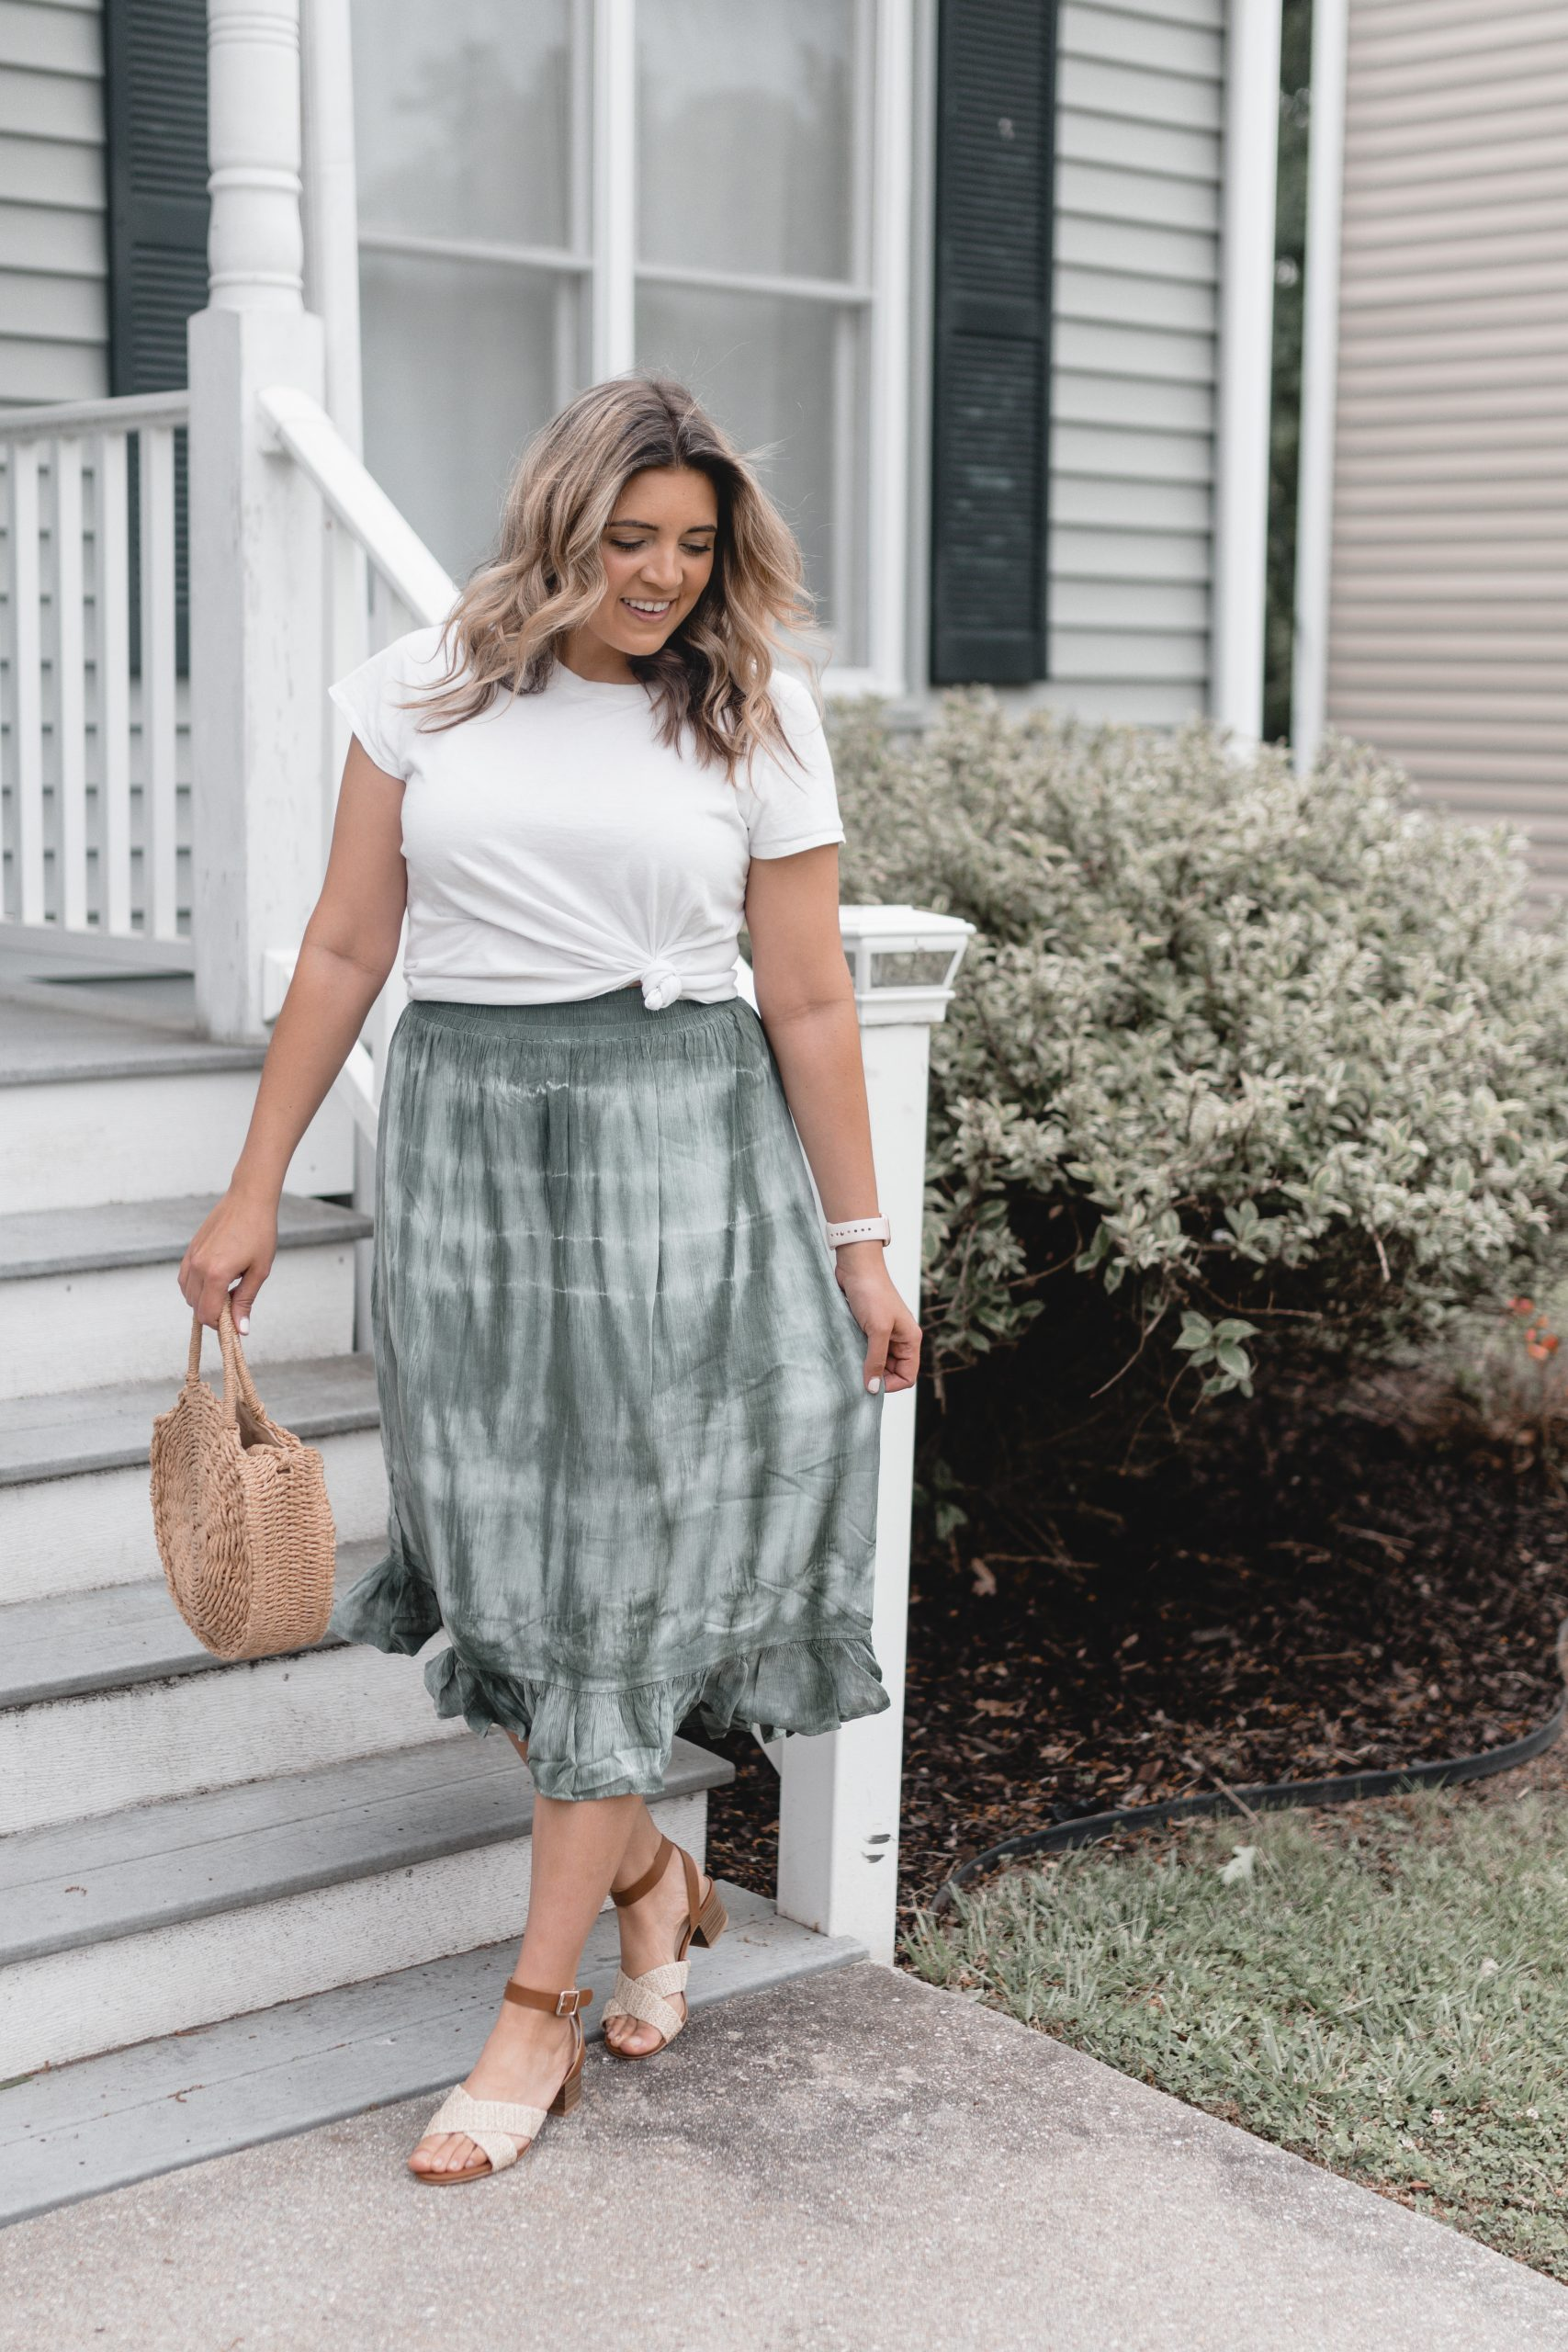 Virginia blogger, Lauren Dix, shares a tie dye skirt outfit plus affordable tie dye clothing!